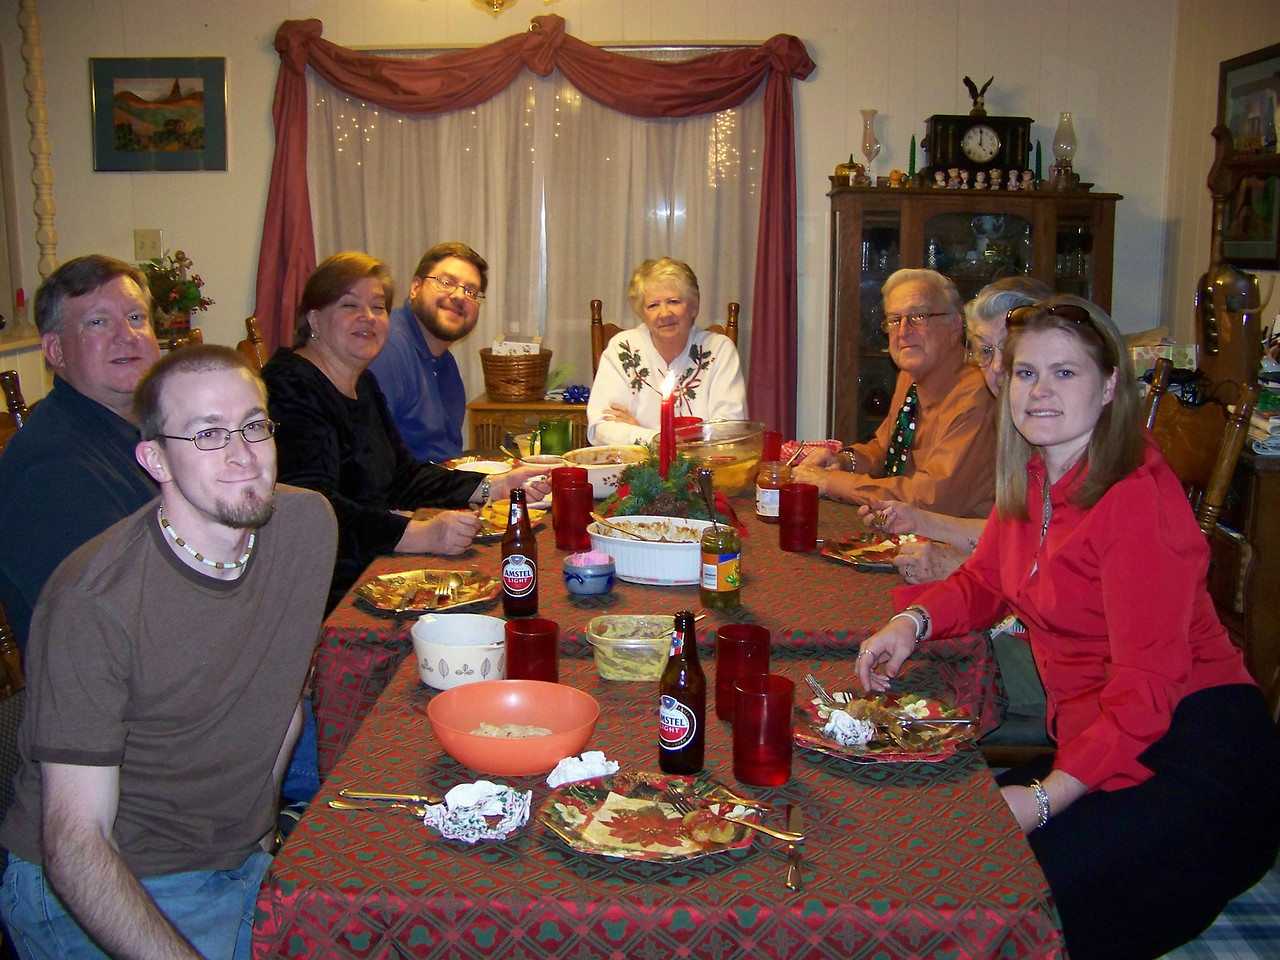 Christmas Eve dinner means tamales!!  Clockwise from left:  Josh, Mark, Wendy, Jon, Sheri, Dad, Mom, Jenna (thanks for taking the picture, Kalyn!)